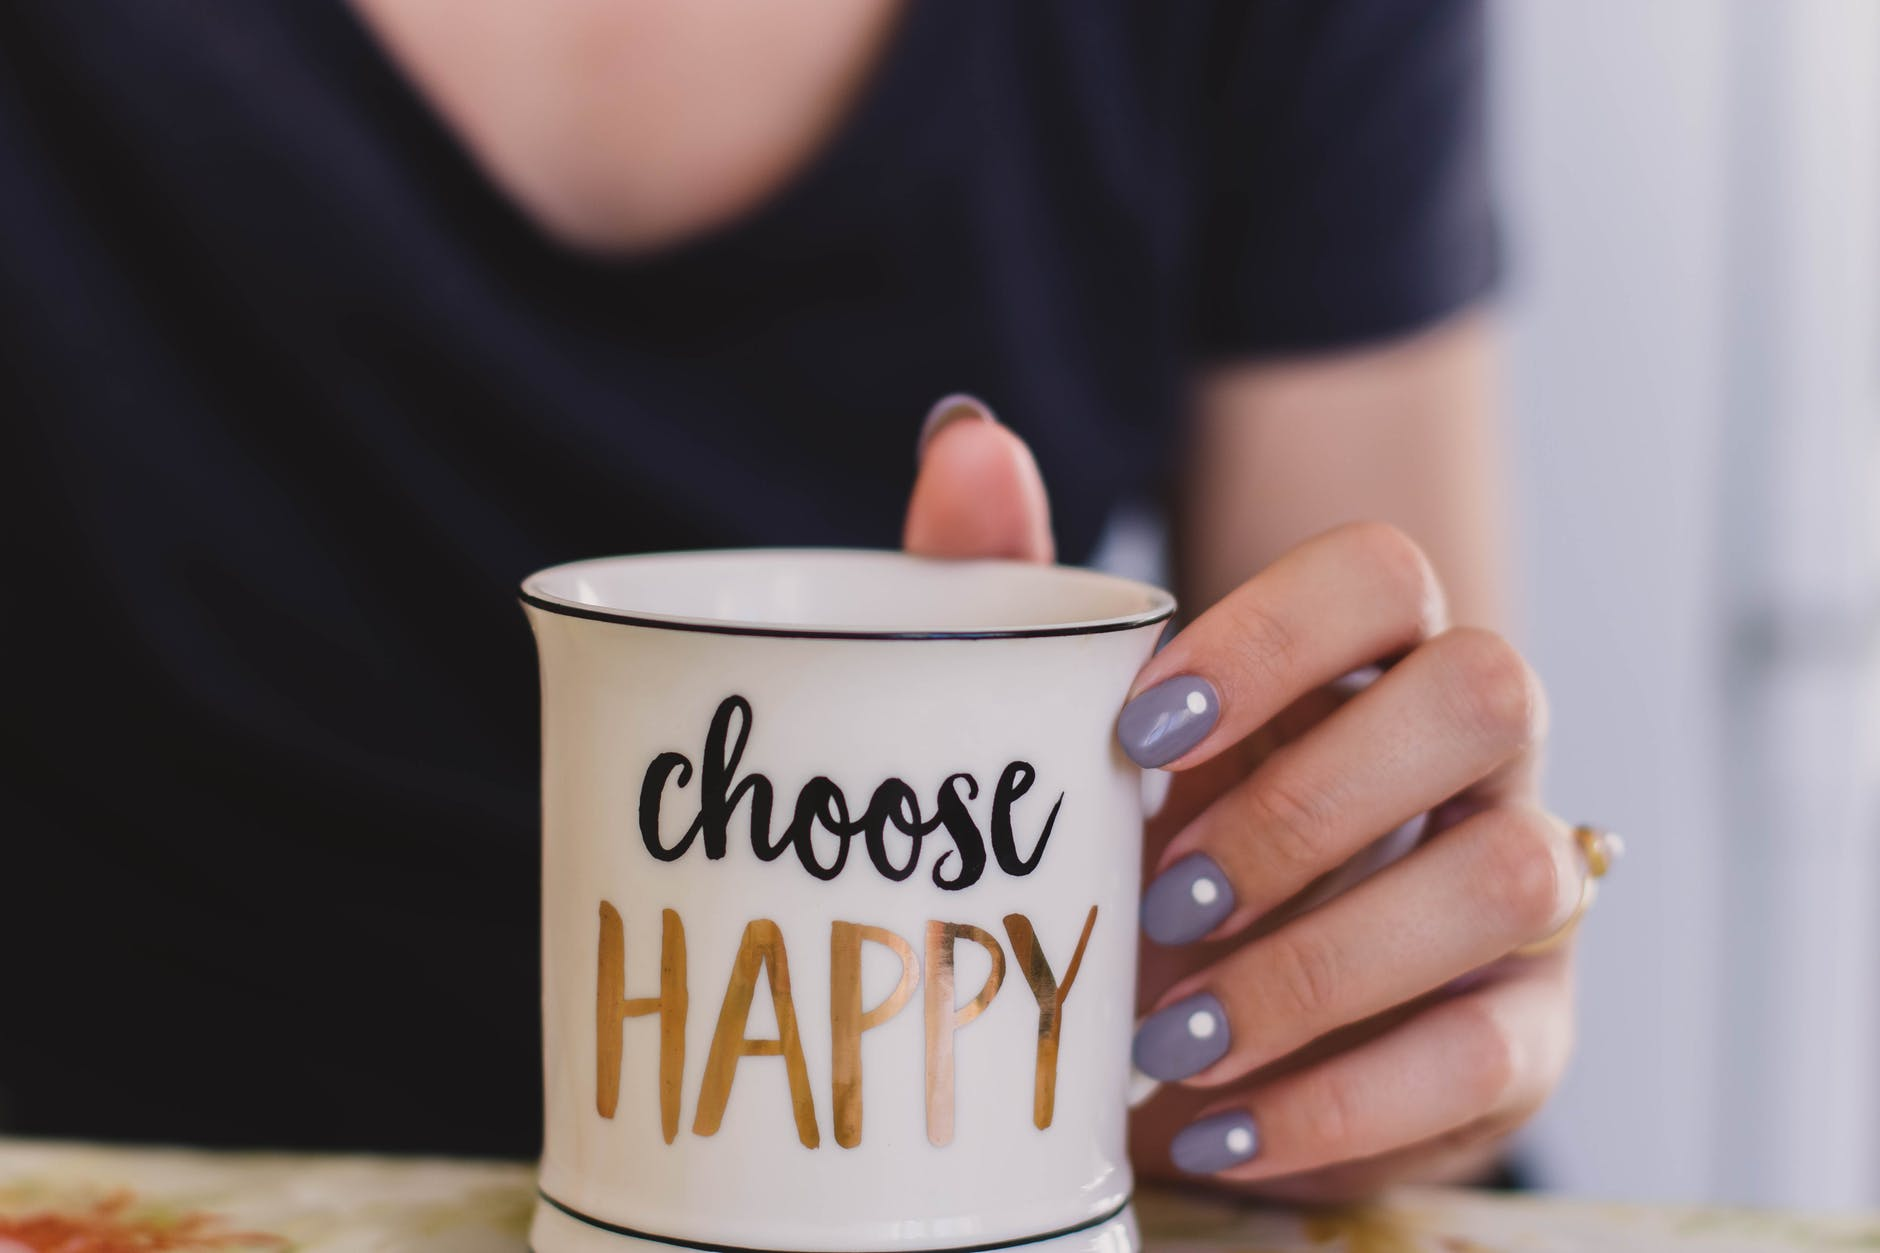 selective focus photography of person touch the white ceramic mug with choose happy graphic